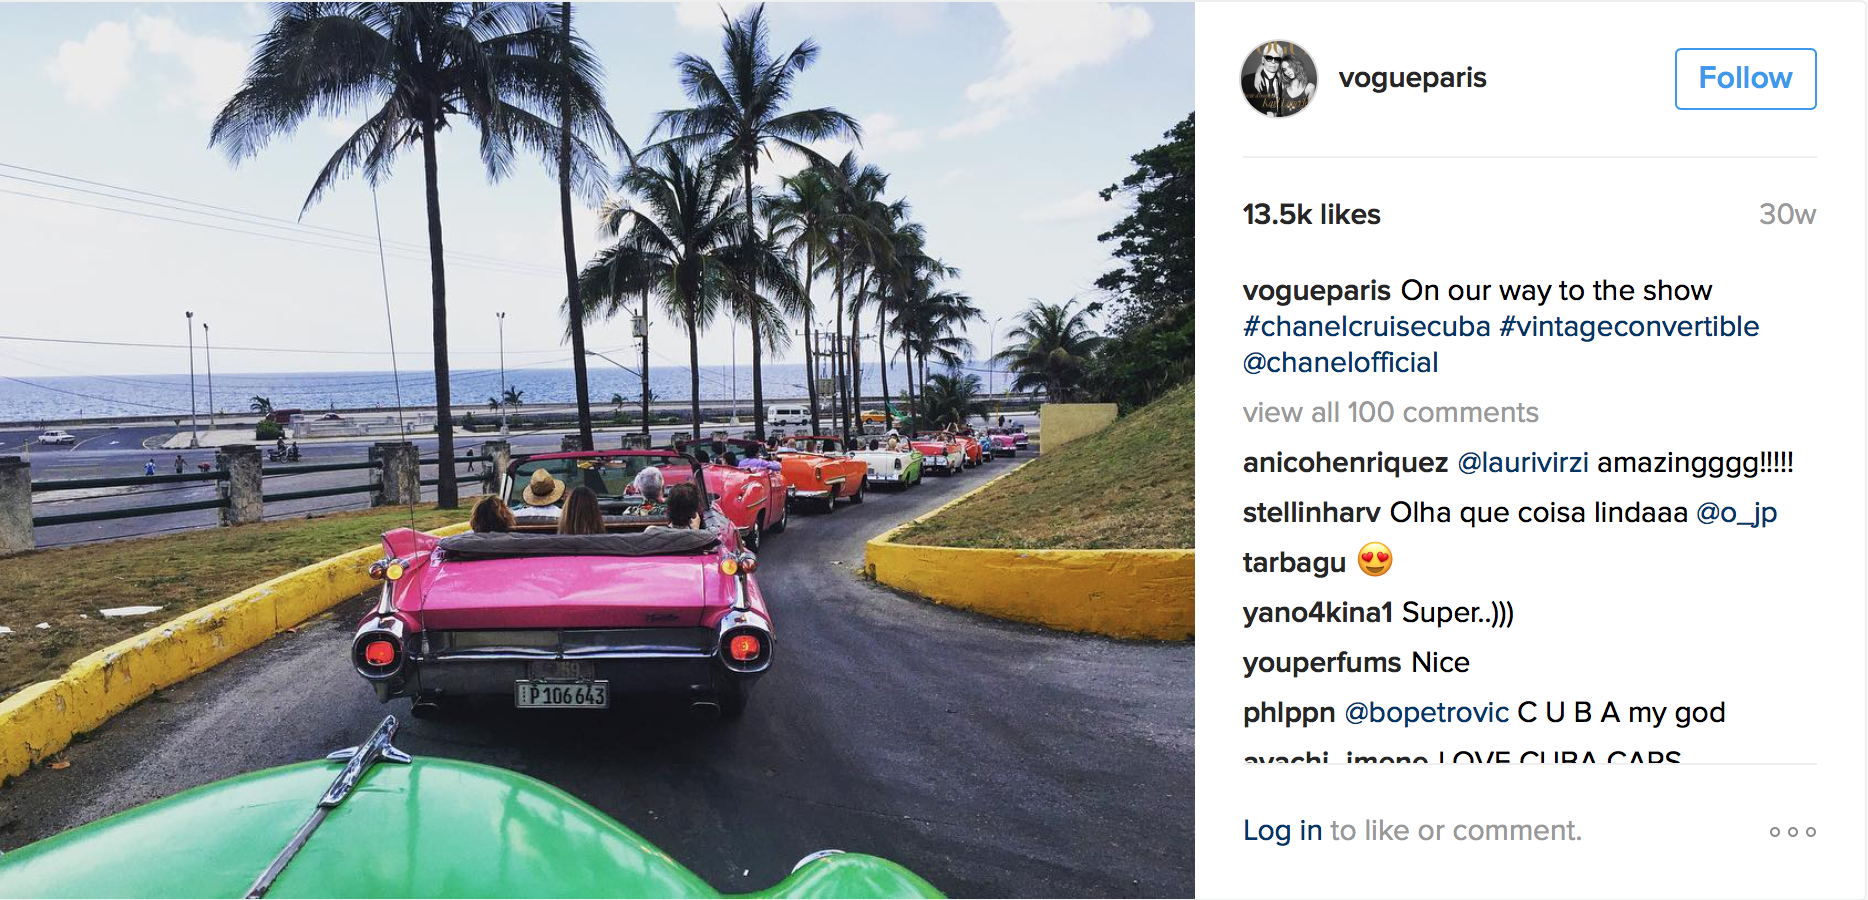 Fashion journalists driving around Havana in vintage 1950s cars